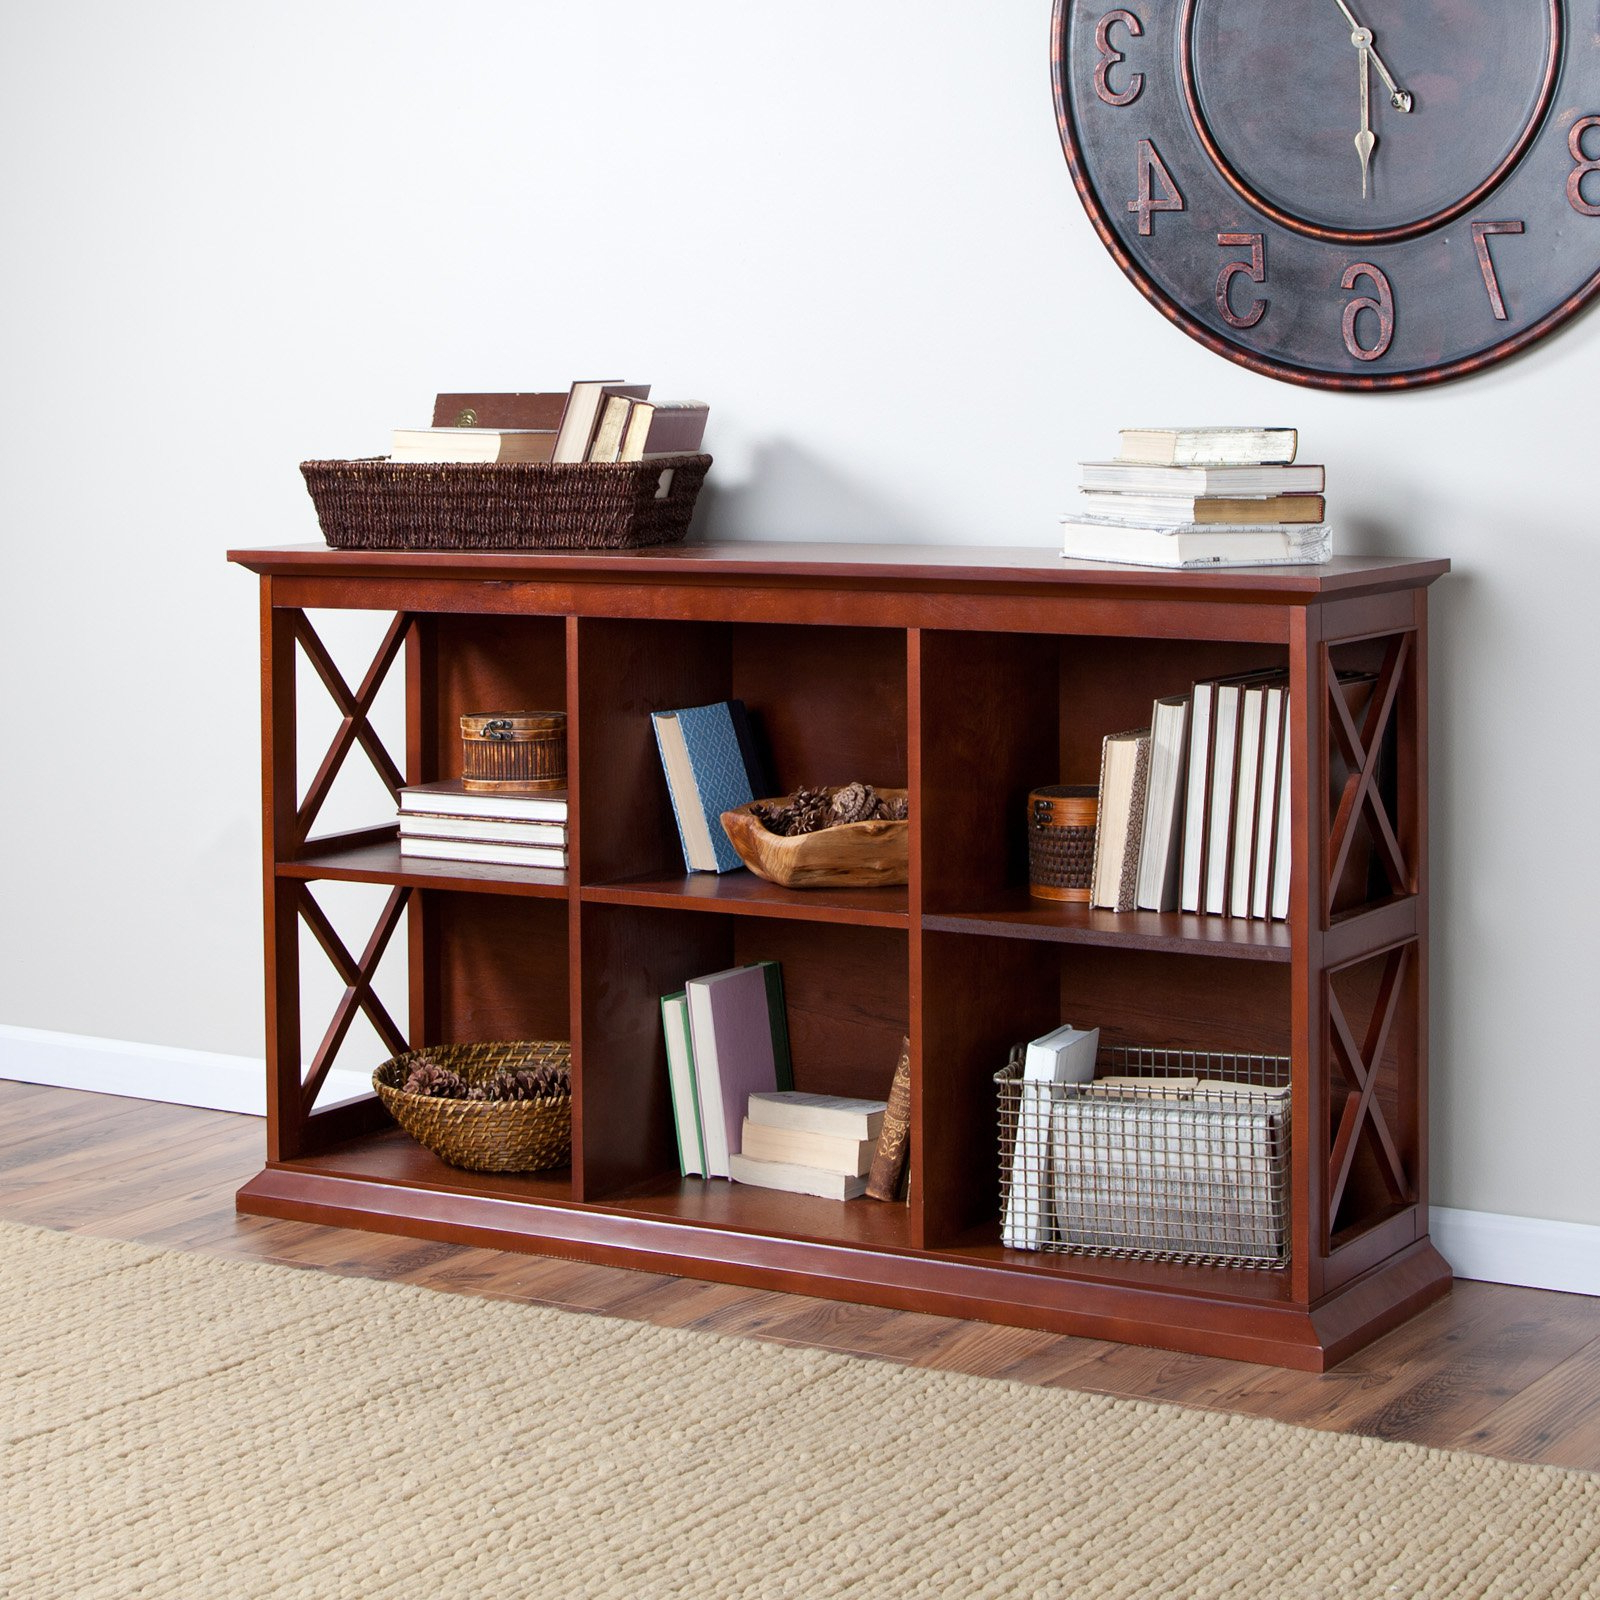 Belham Living Hampton Tv Stand Bookcase – Cherry – Walmart With Popular Tv Stands With Matching Bookcases (View 2 of 20)